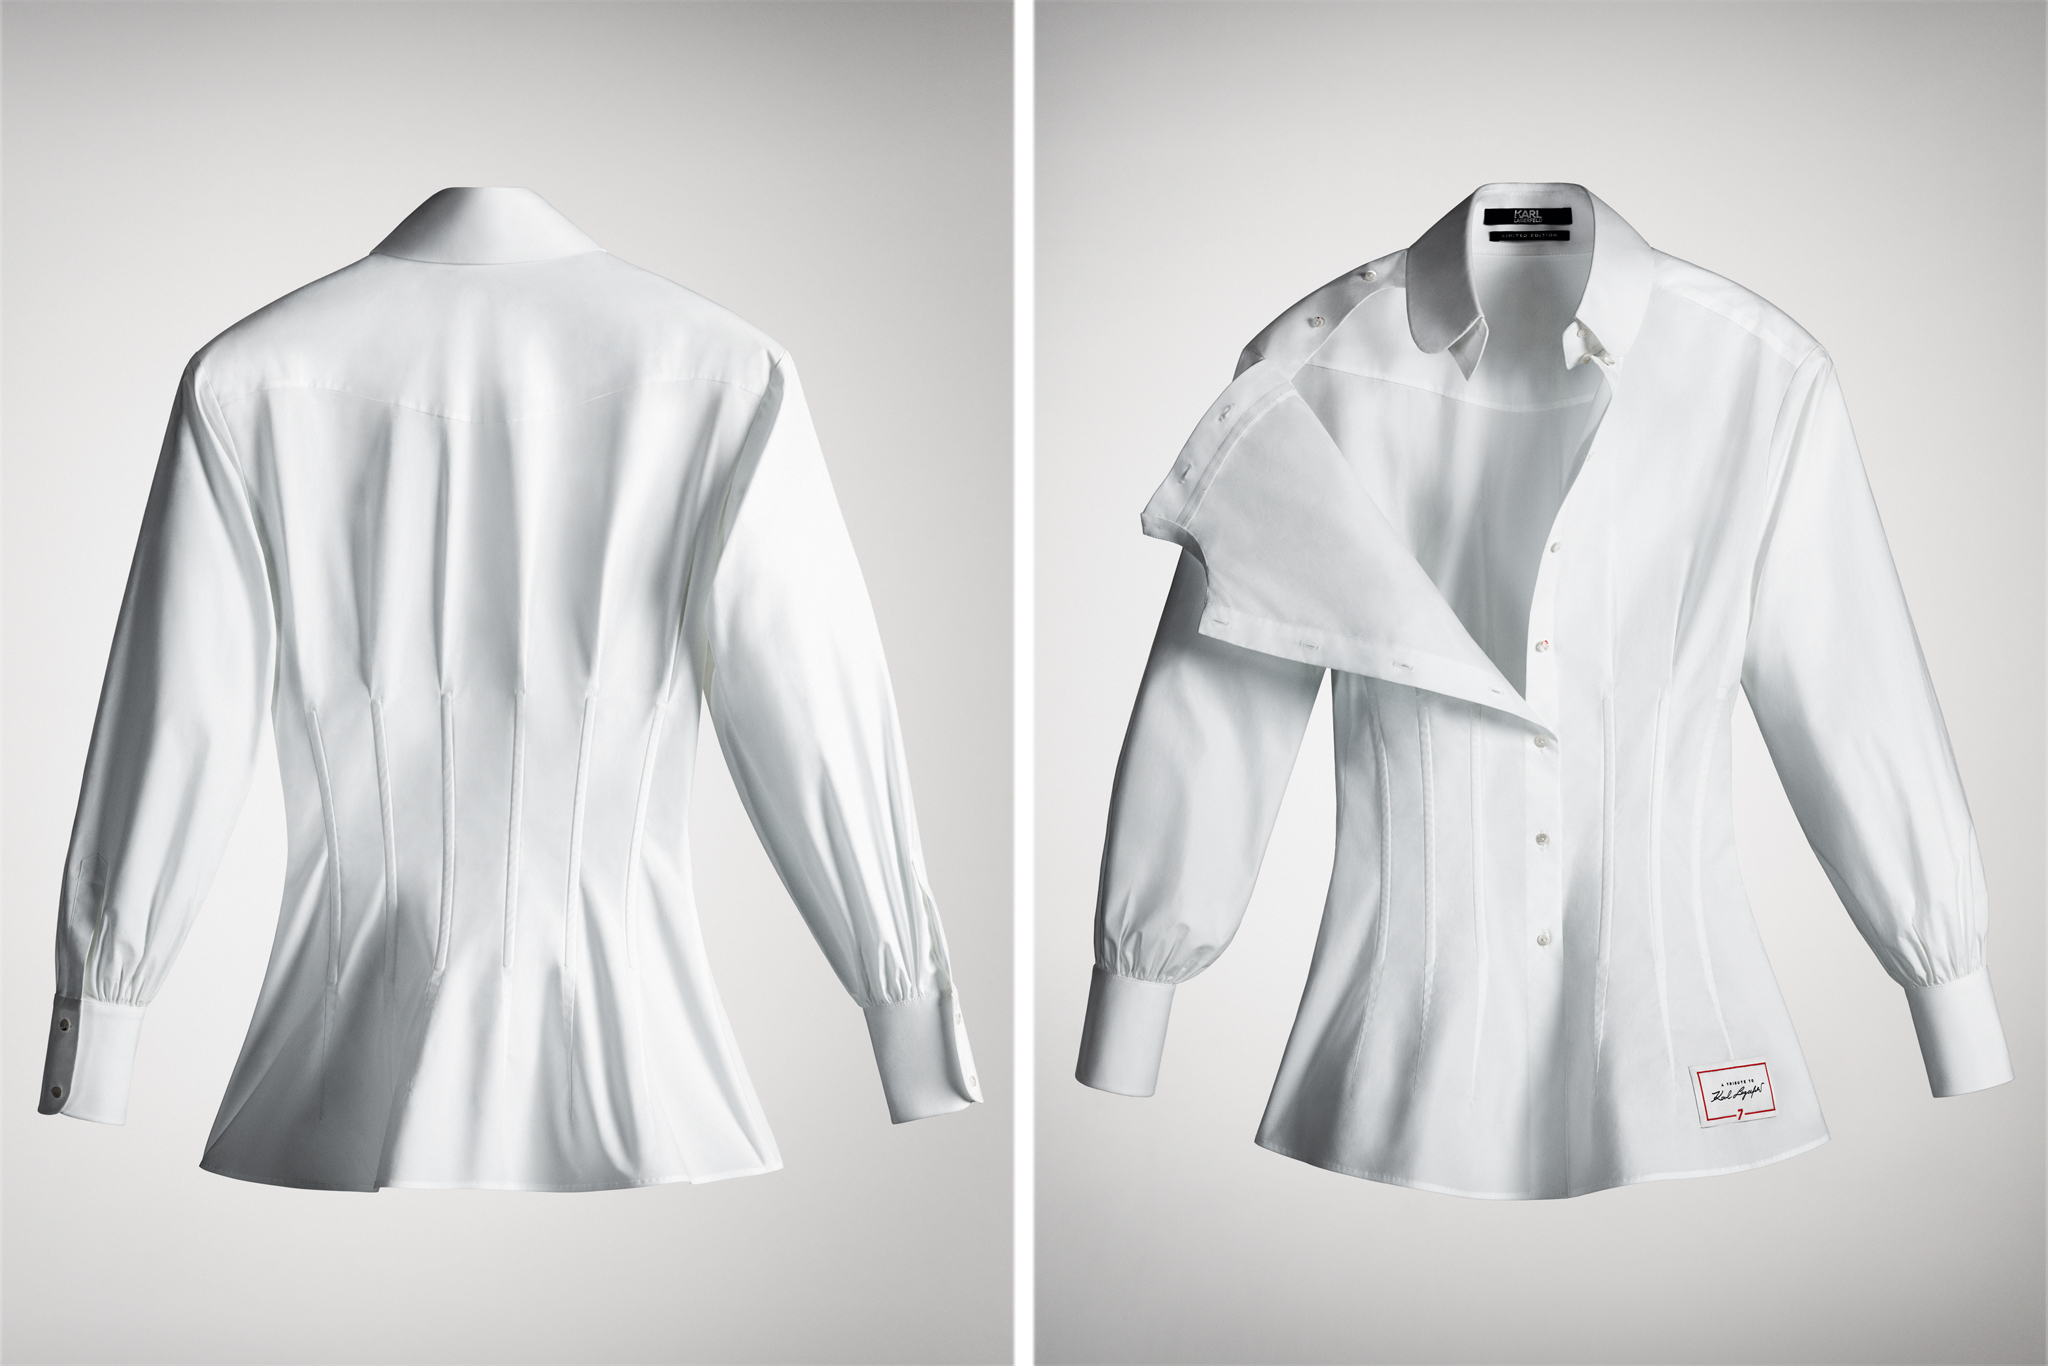 The shirt designed by Carine Roitfeld